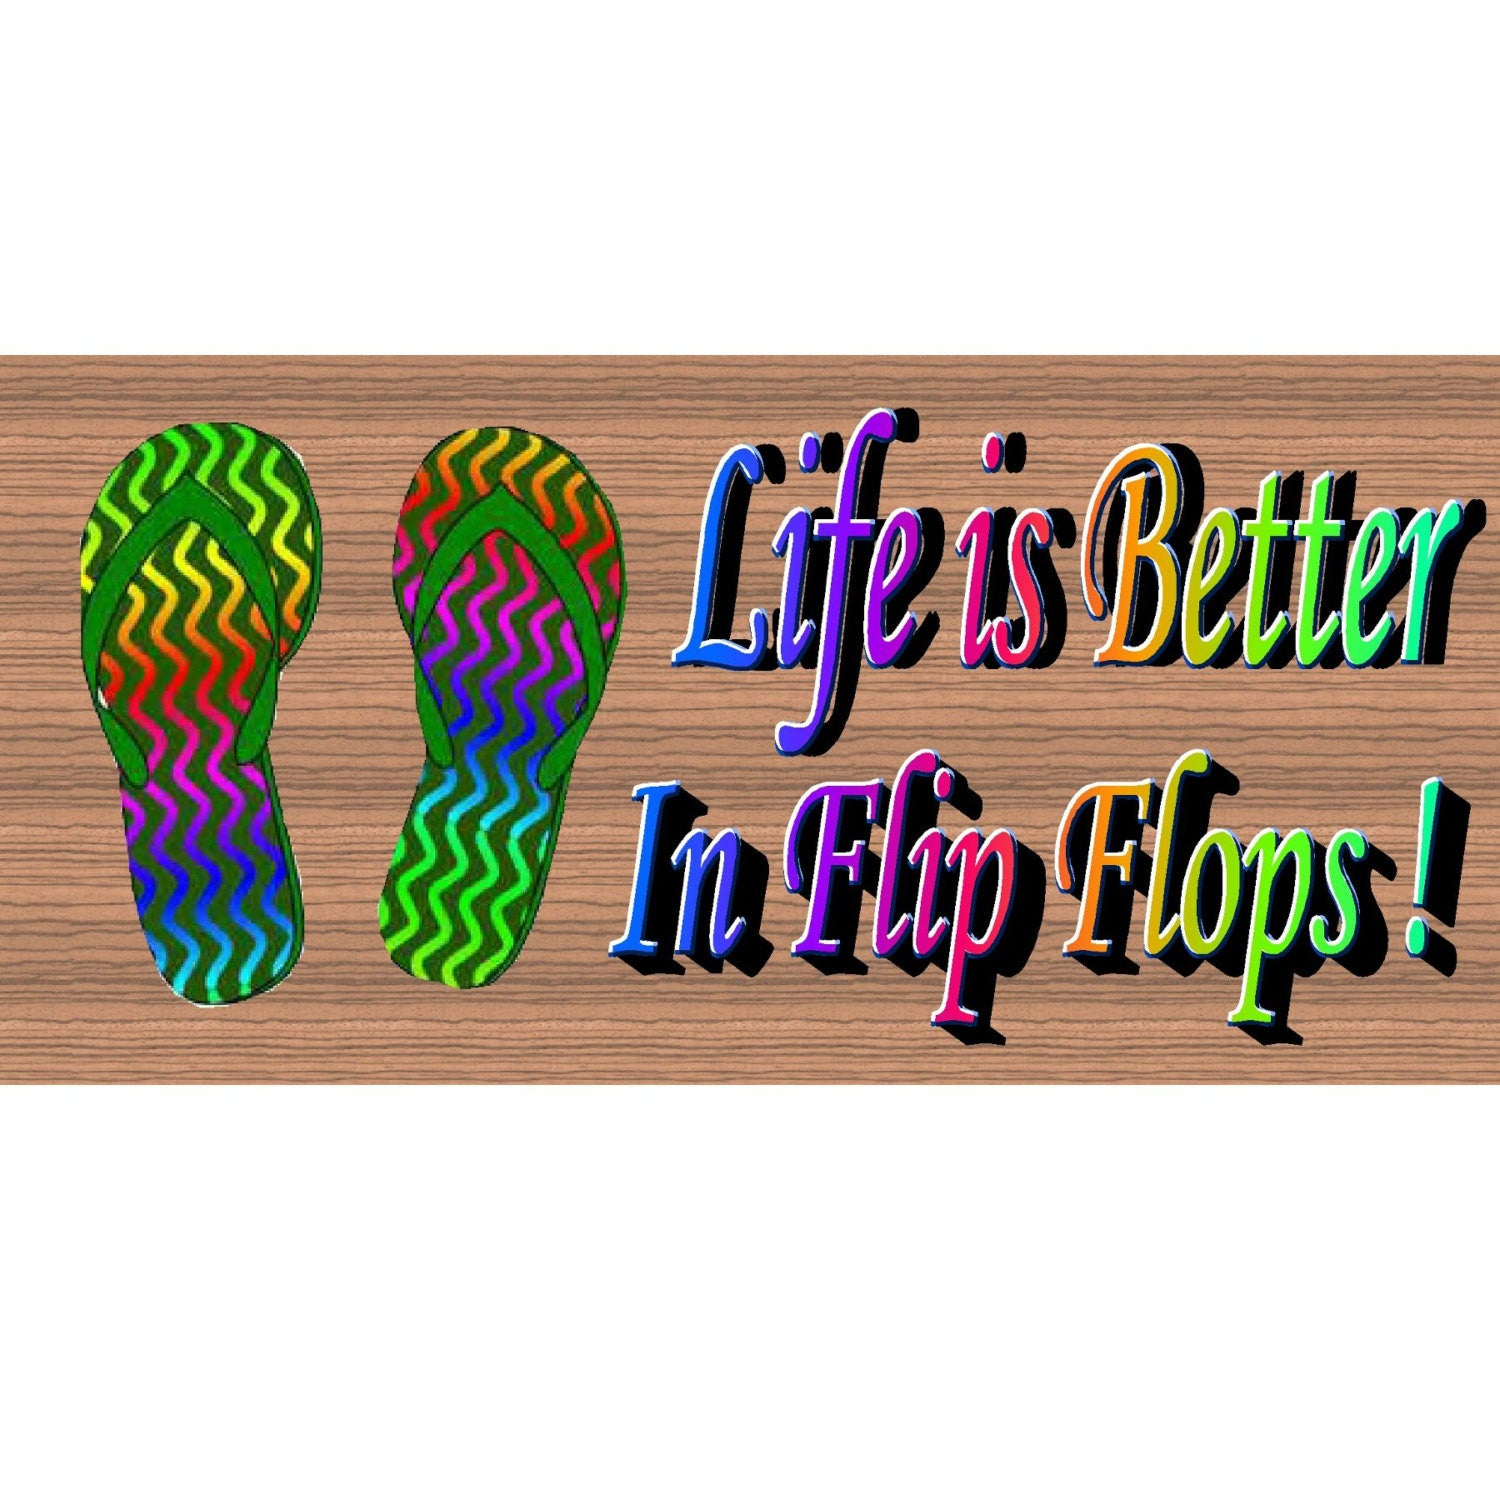 Flip Flop Wood Signs -Life is Better in Flip Flops- GS 977 - Flip Flop Plaque